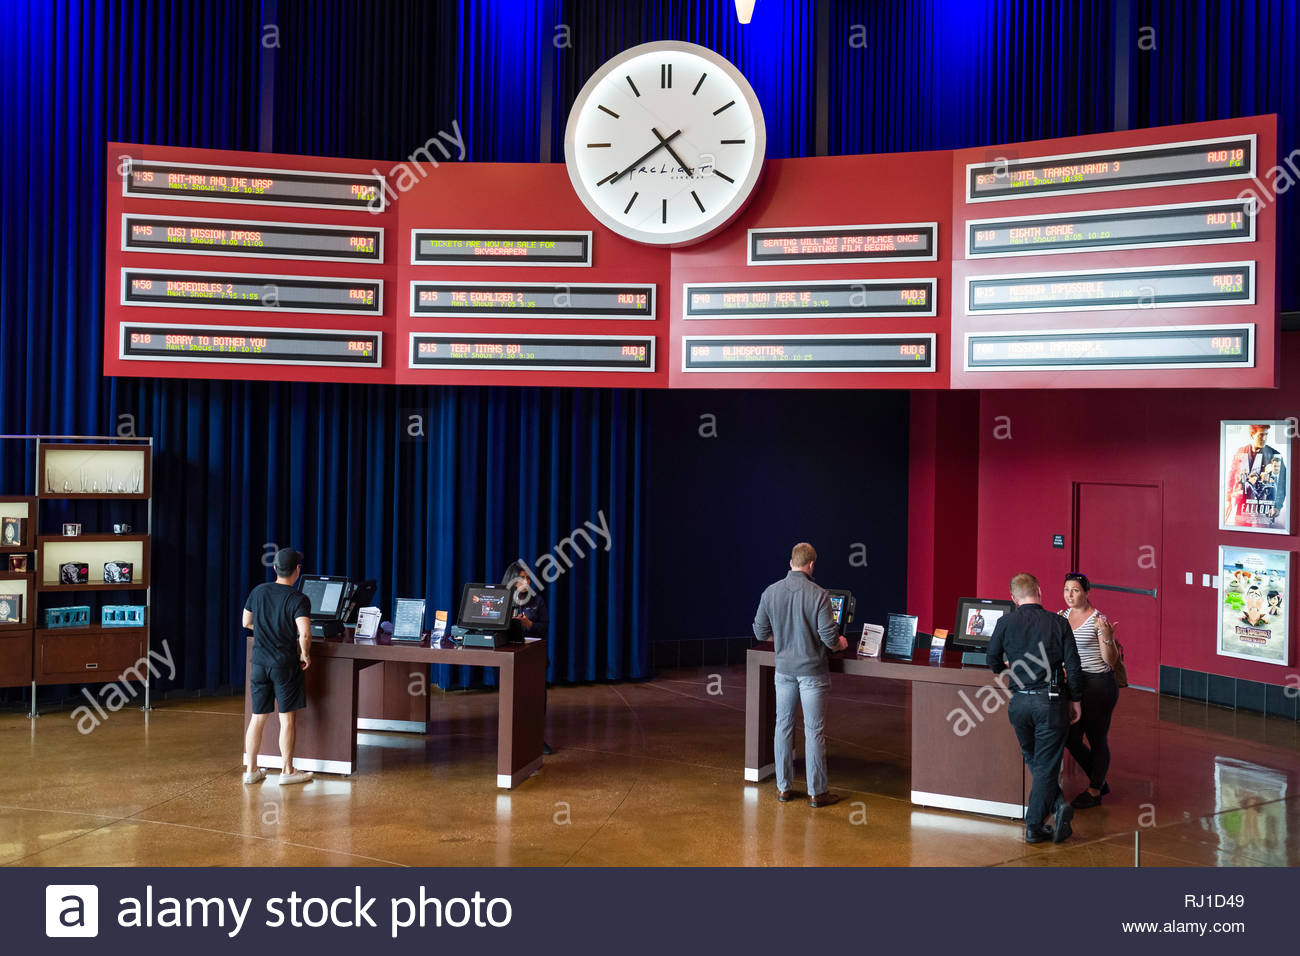 Large analog clock and digital displays of movie times above self-service ticket kiosk in the lobby of the Arclight Cinemas, Santa Monica Place, Santa - Stock Image